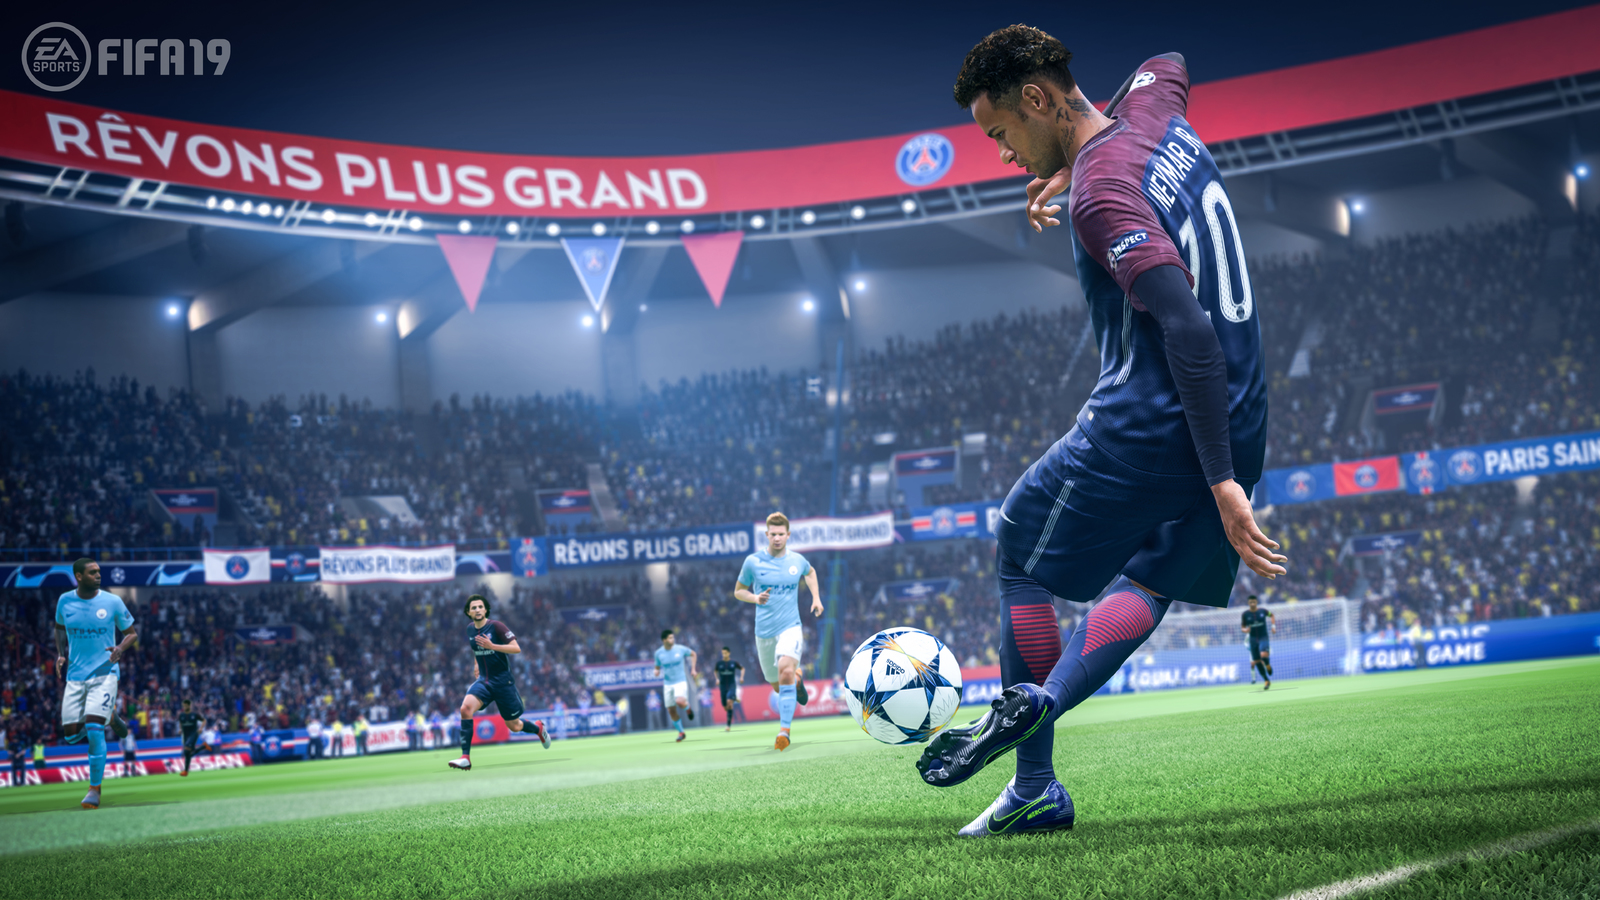 FIFA 19 for Switch image